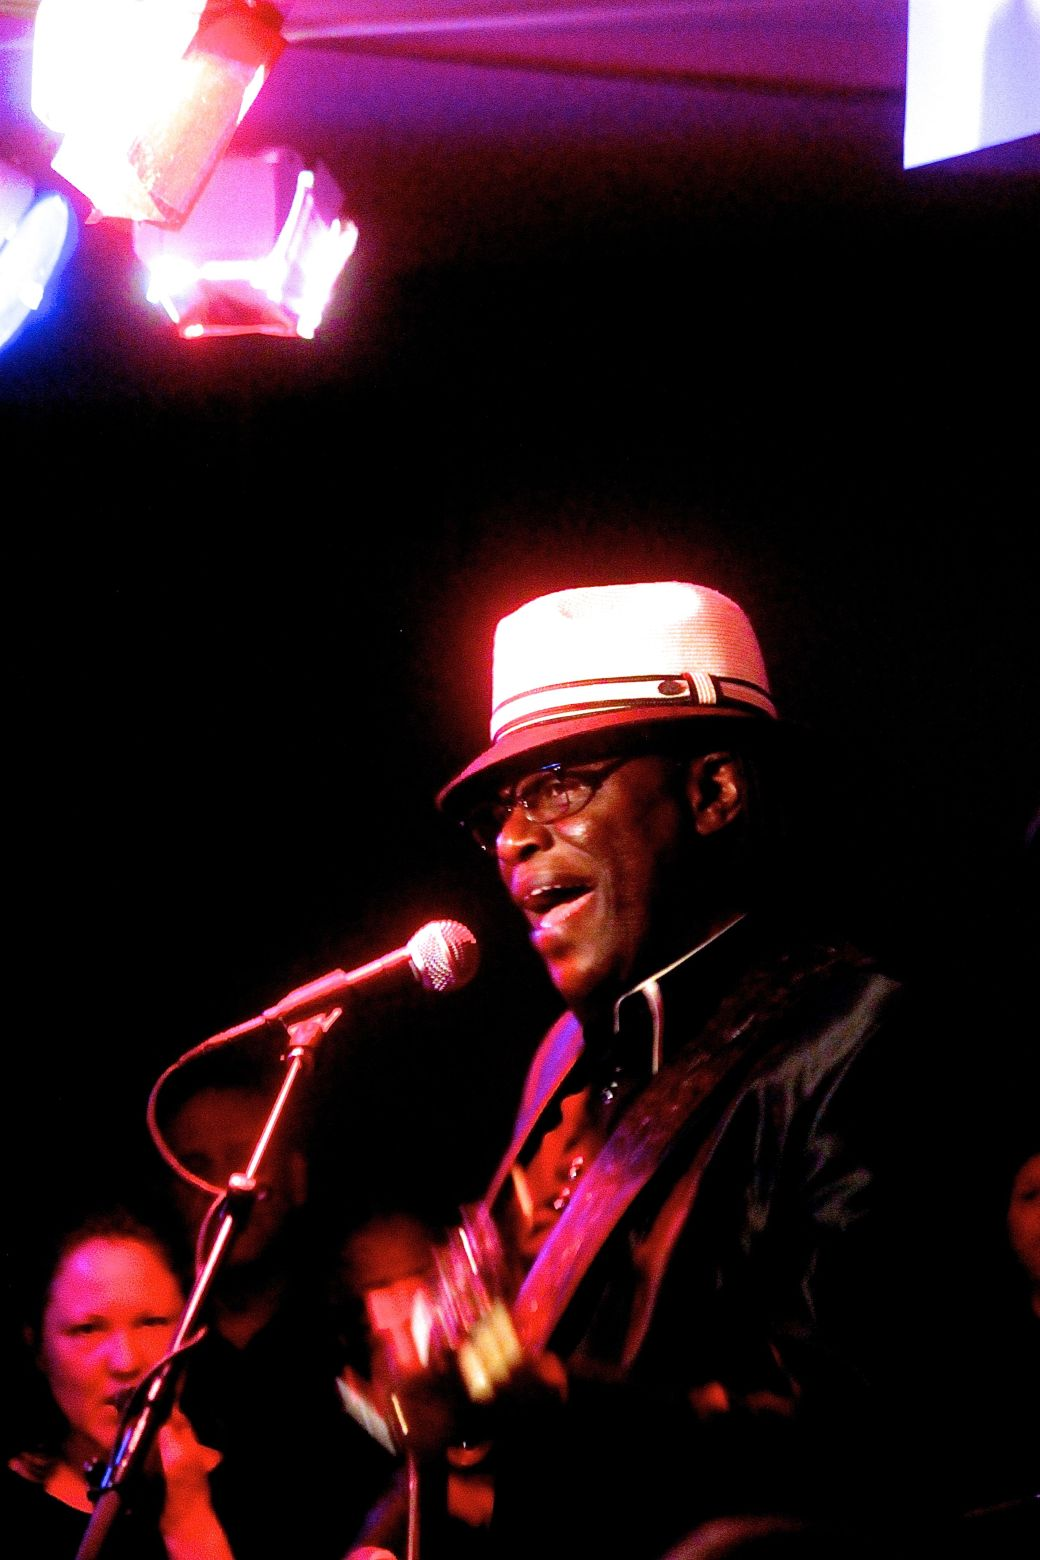 boston charles hotel joe louis walker concert blues january 17 2014 11